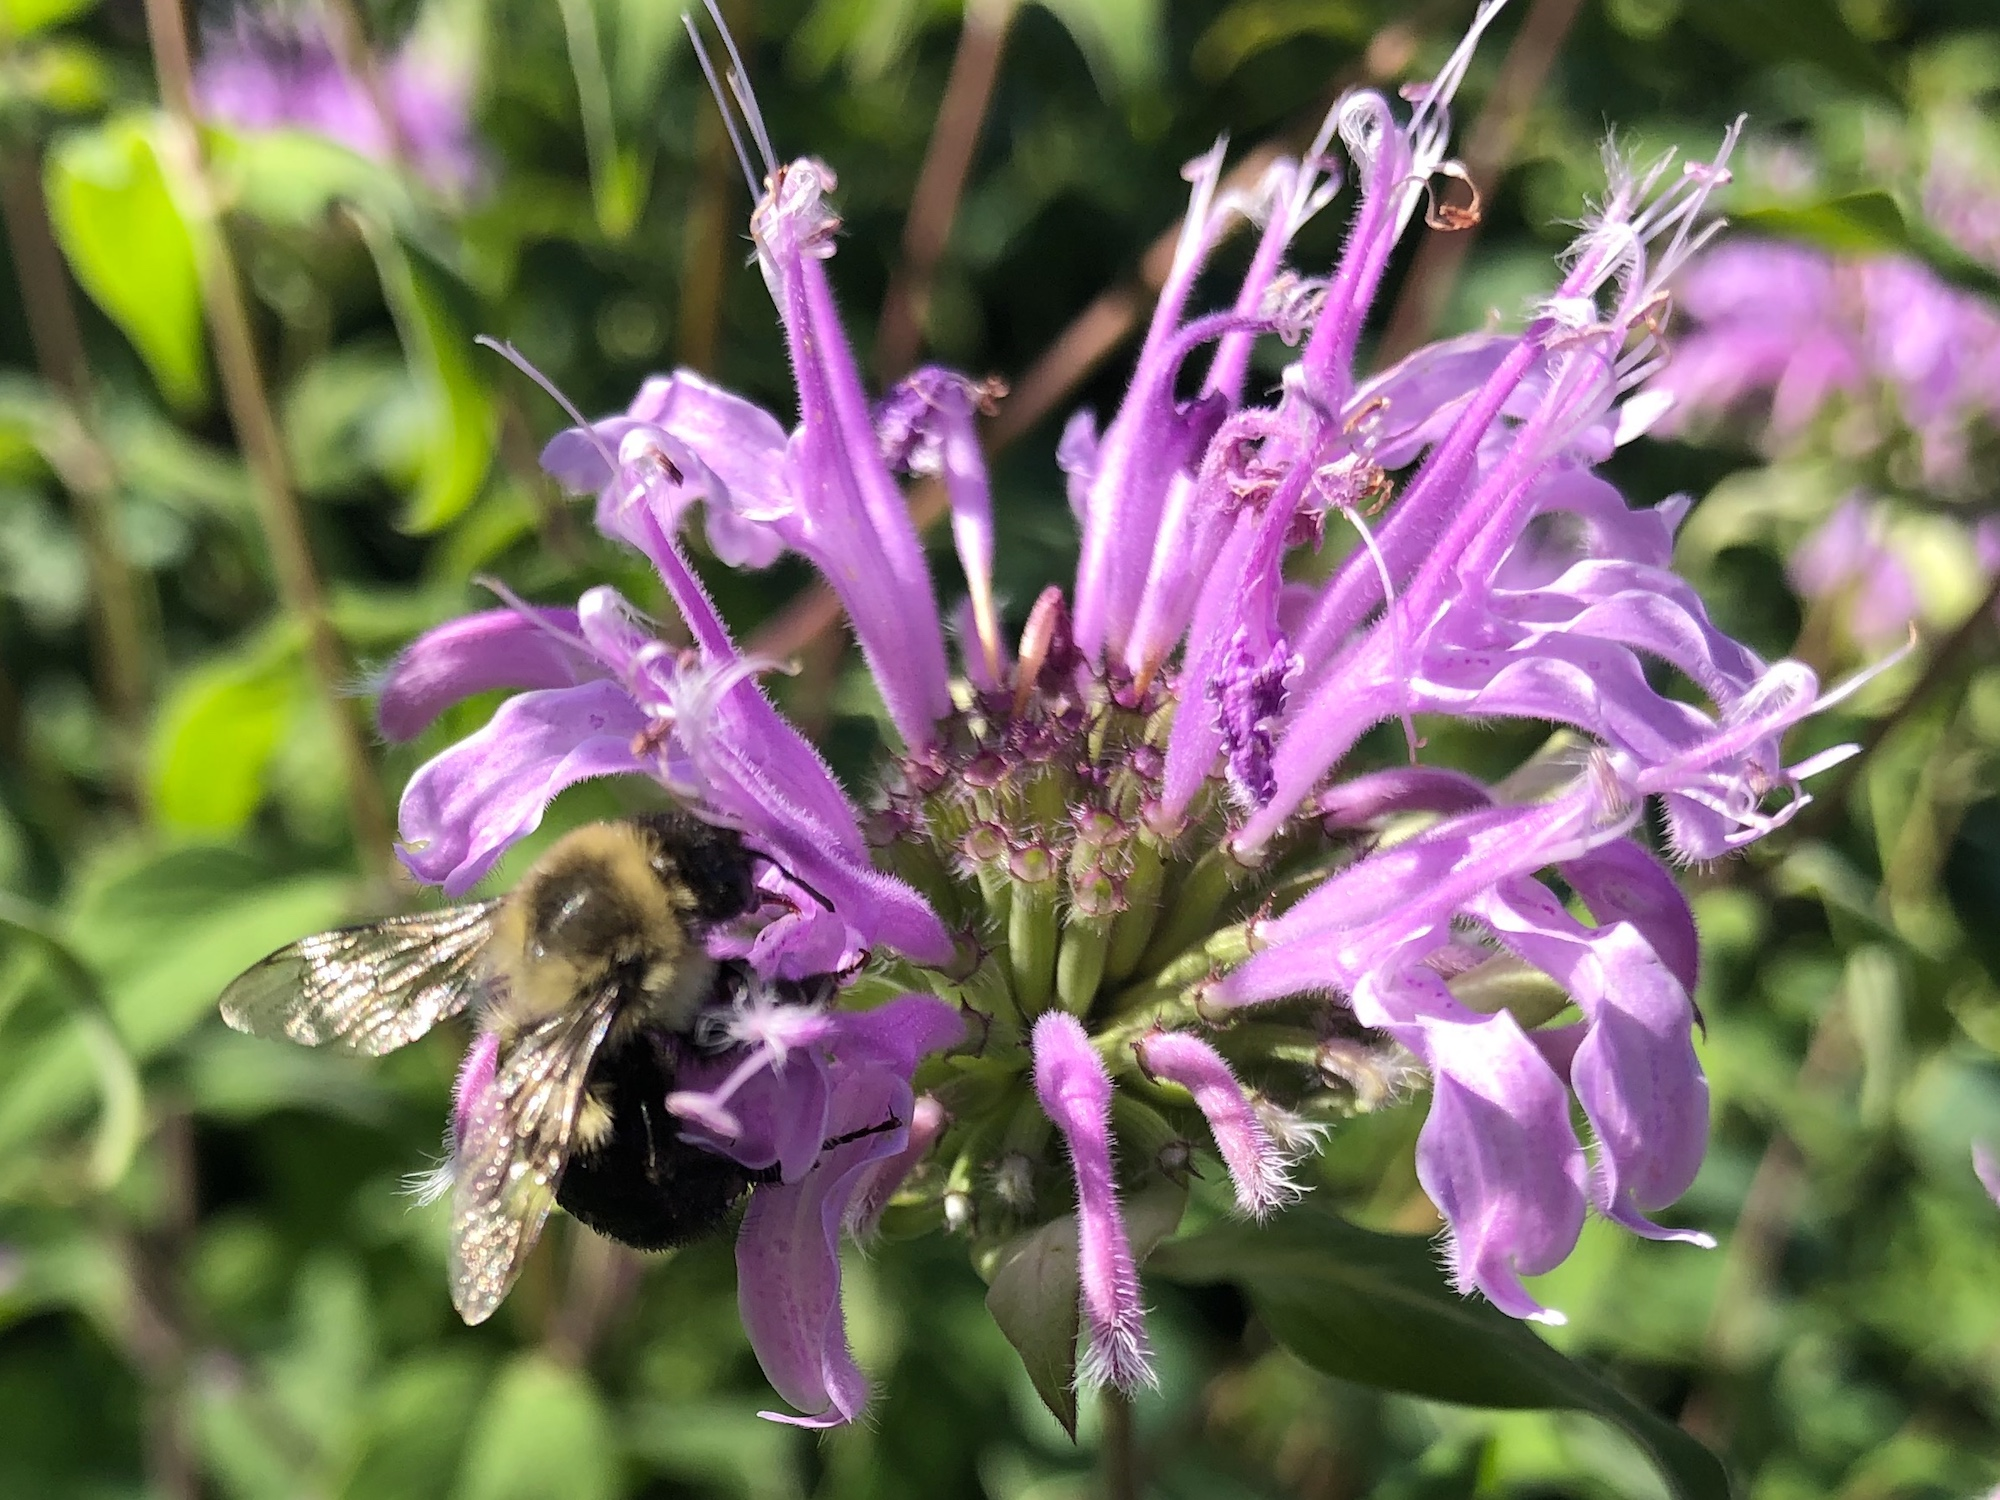 Bumblebee on Bergamot on July 30, 2019.